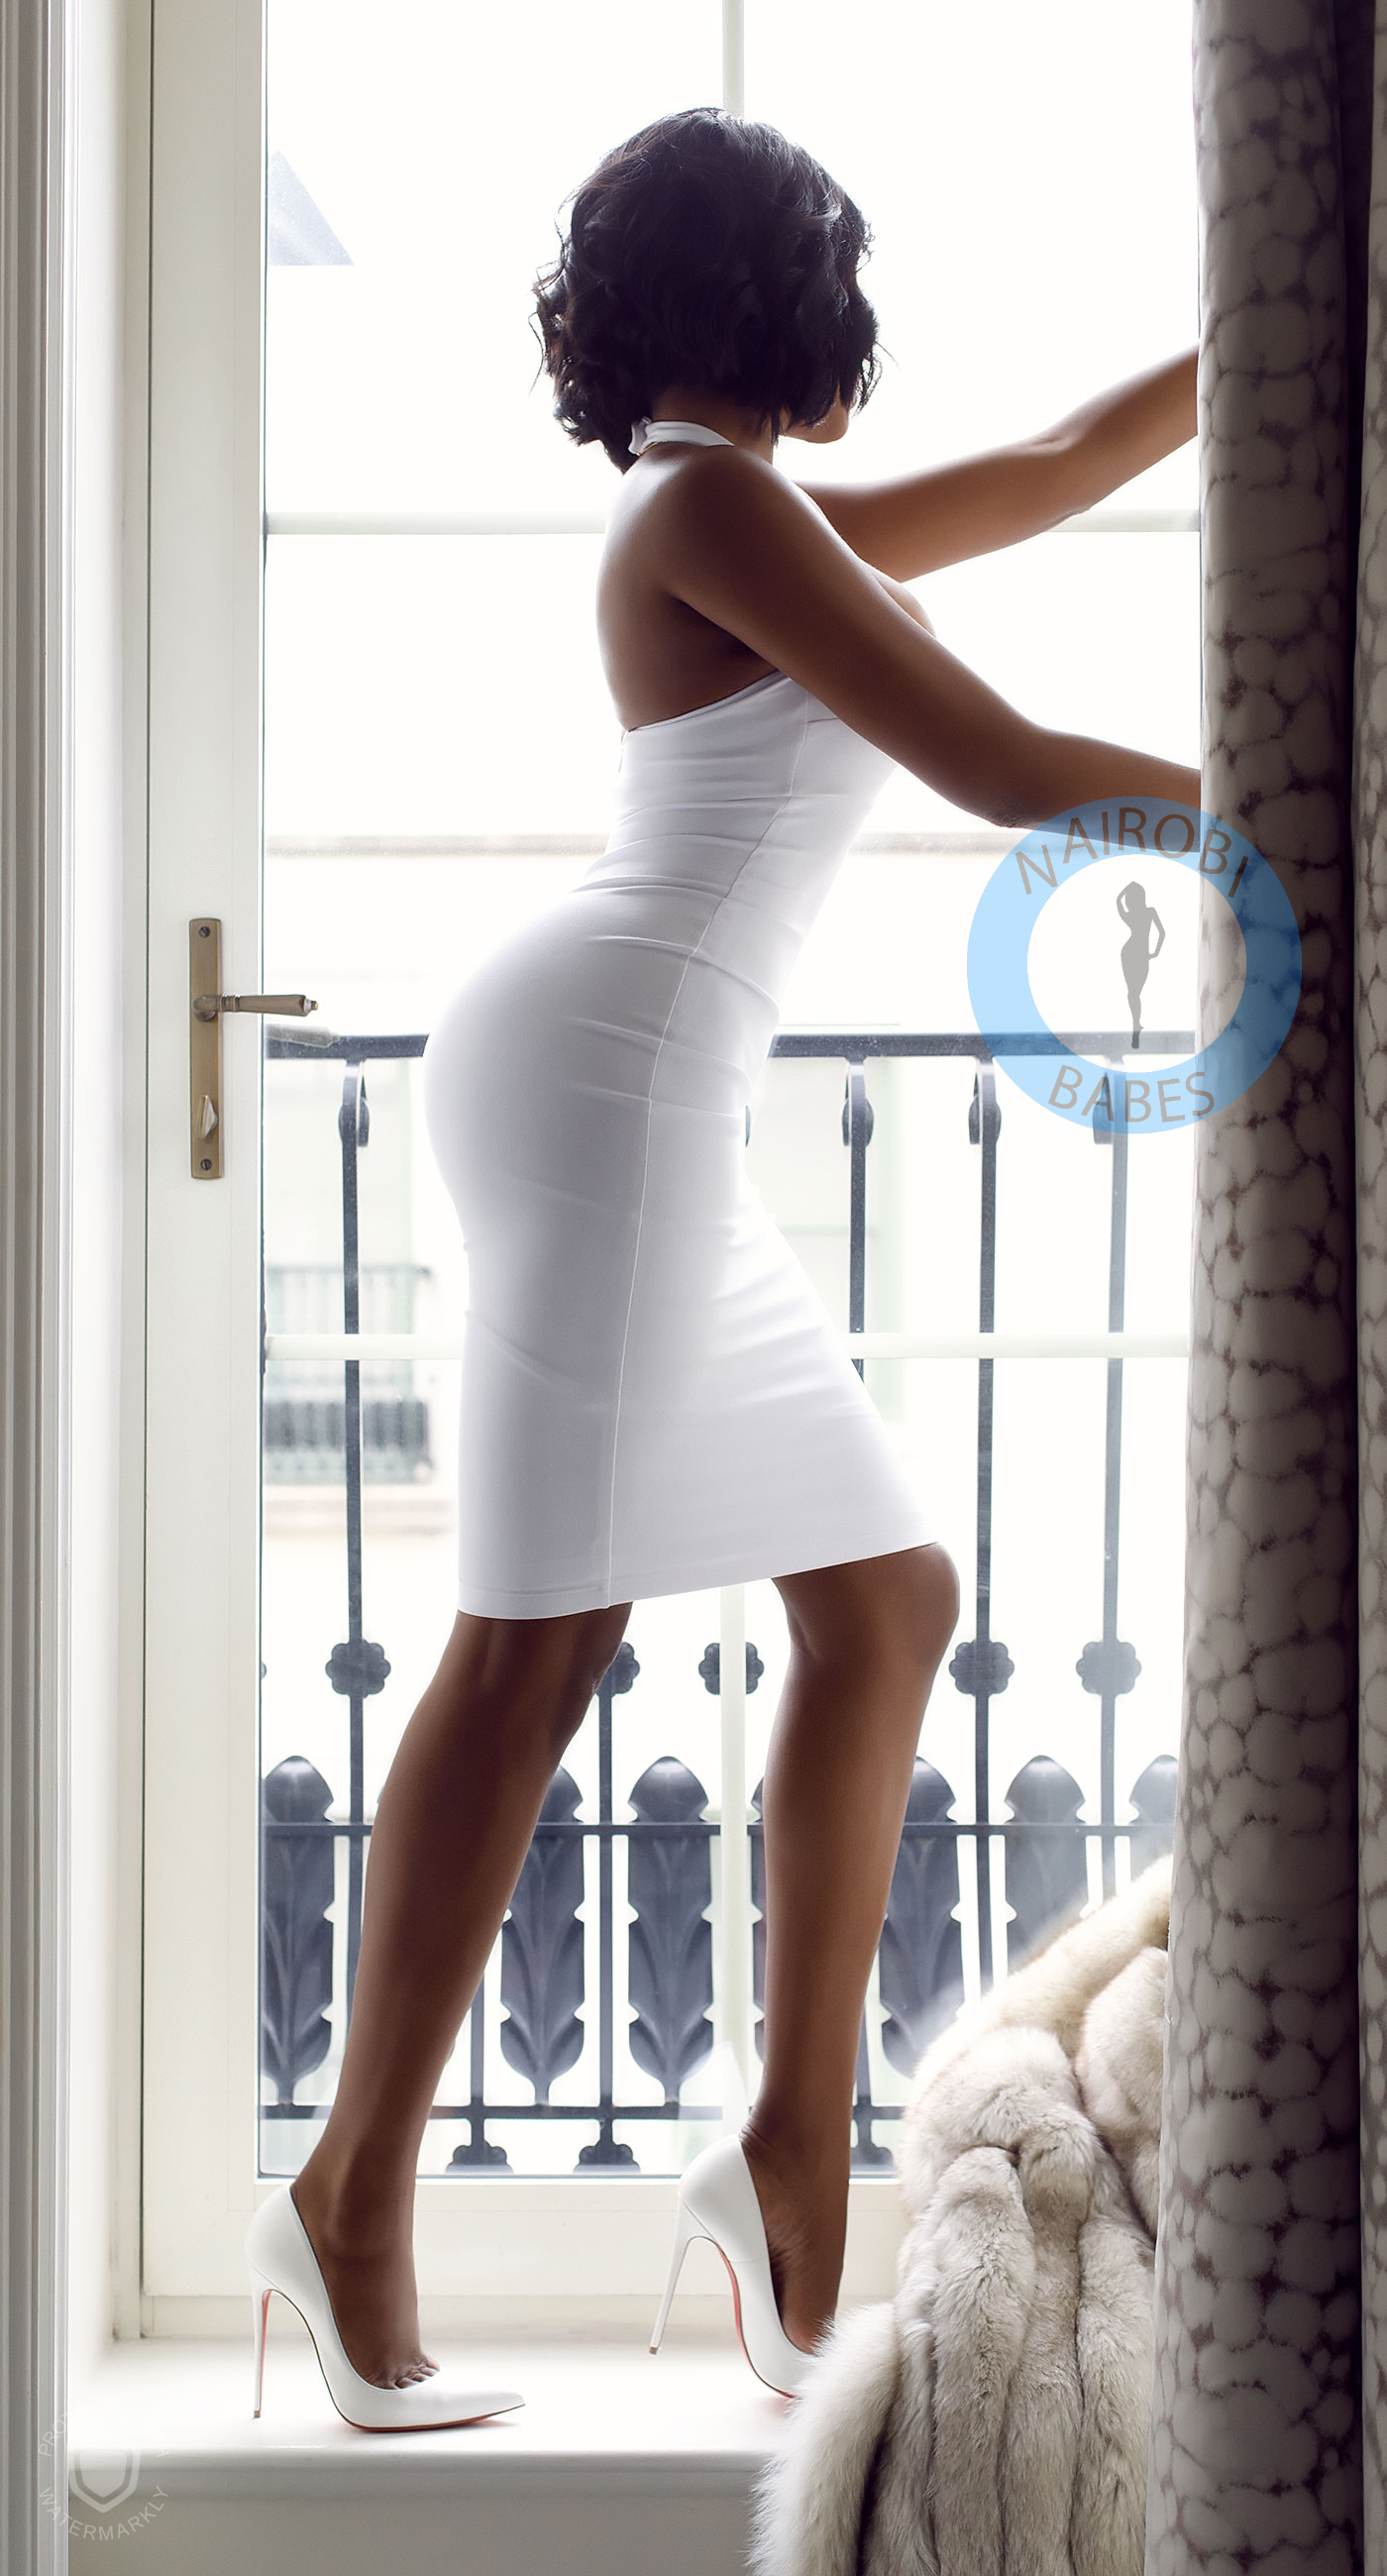 Spend some time with Nairobibabes Escort Charlotte in CBD ; you won't regret it